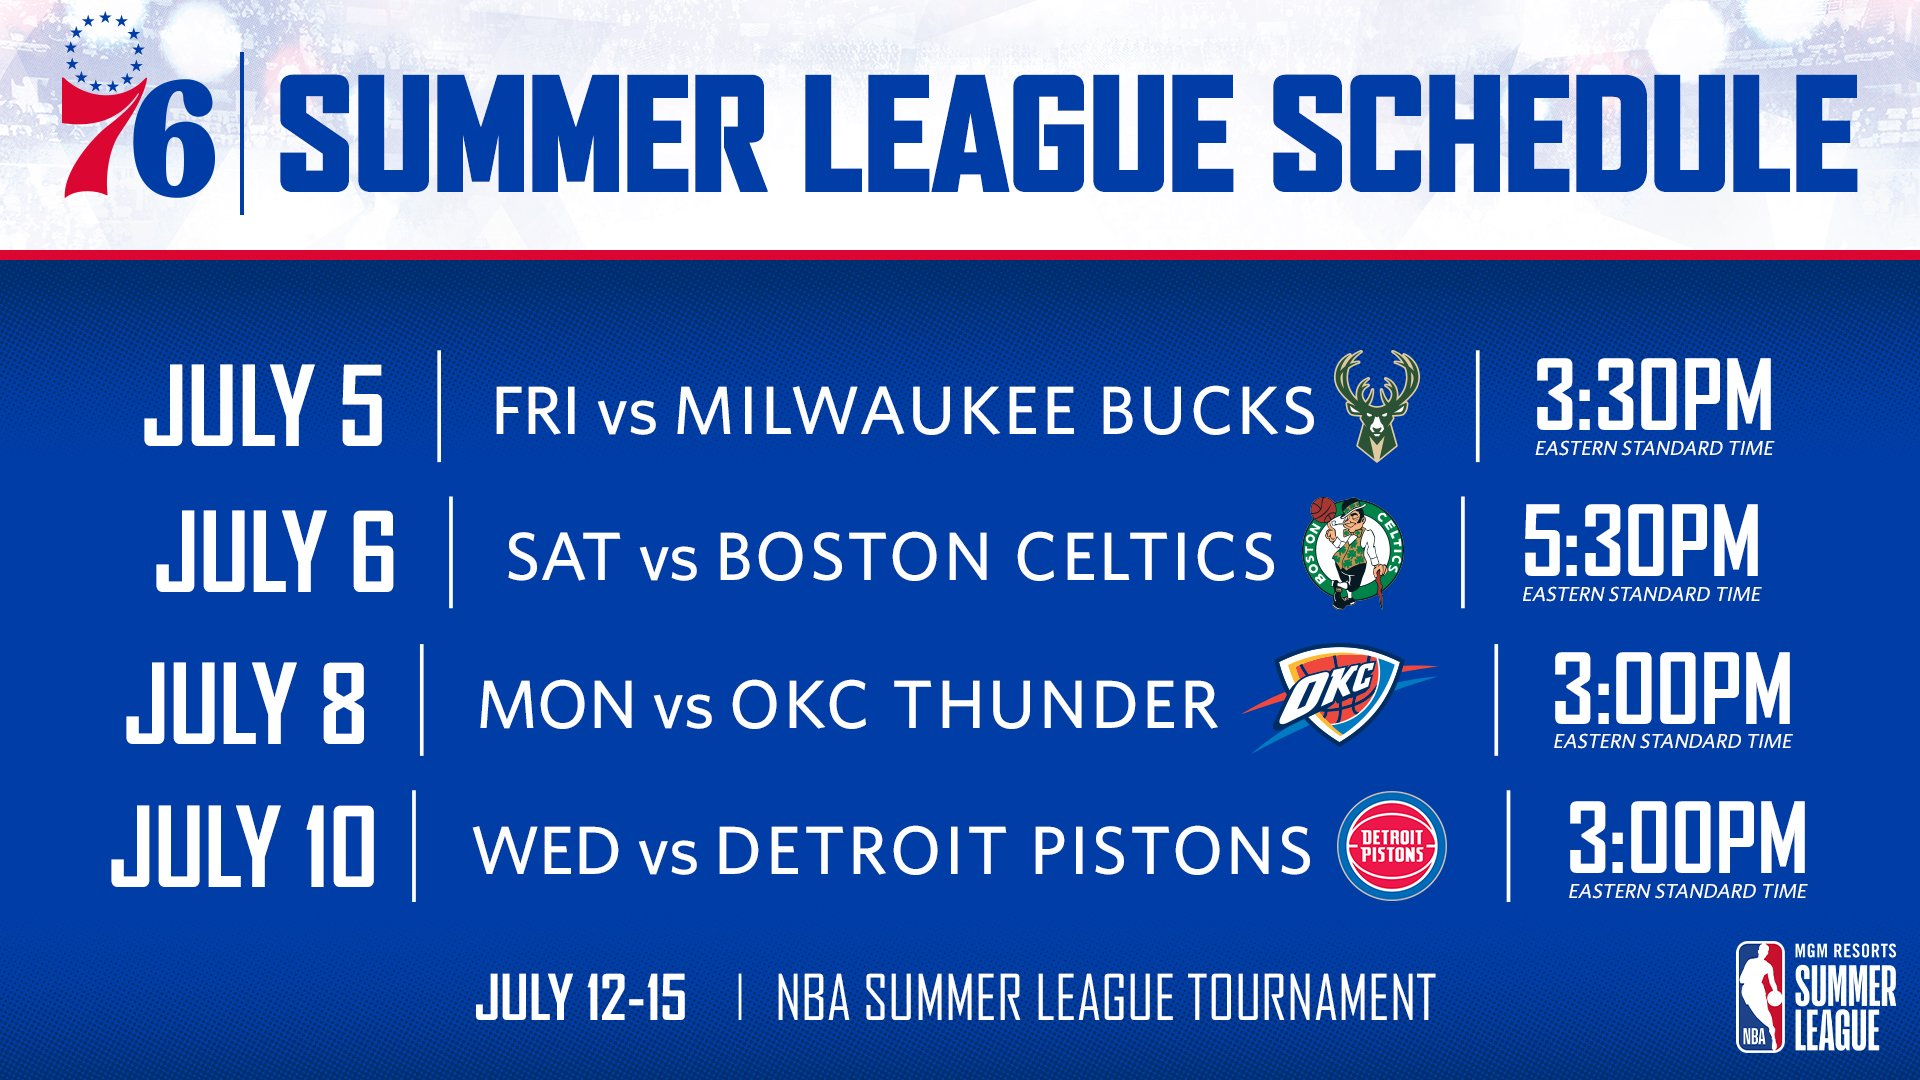 Nba Announces Schedule For 2019 Summer League | Philadelphia 76Ers 76Ers Calendar 2019